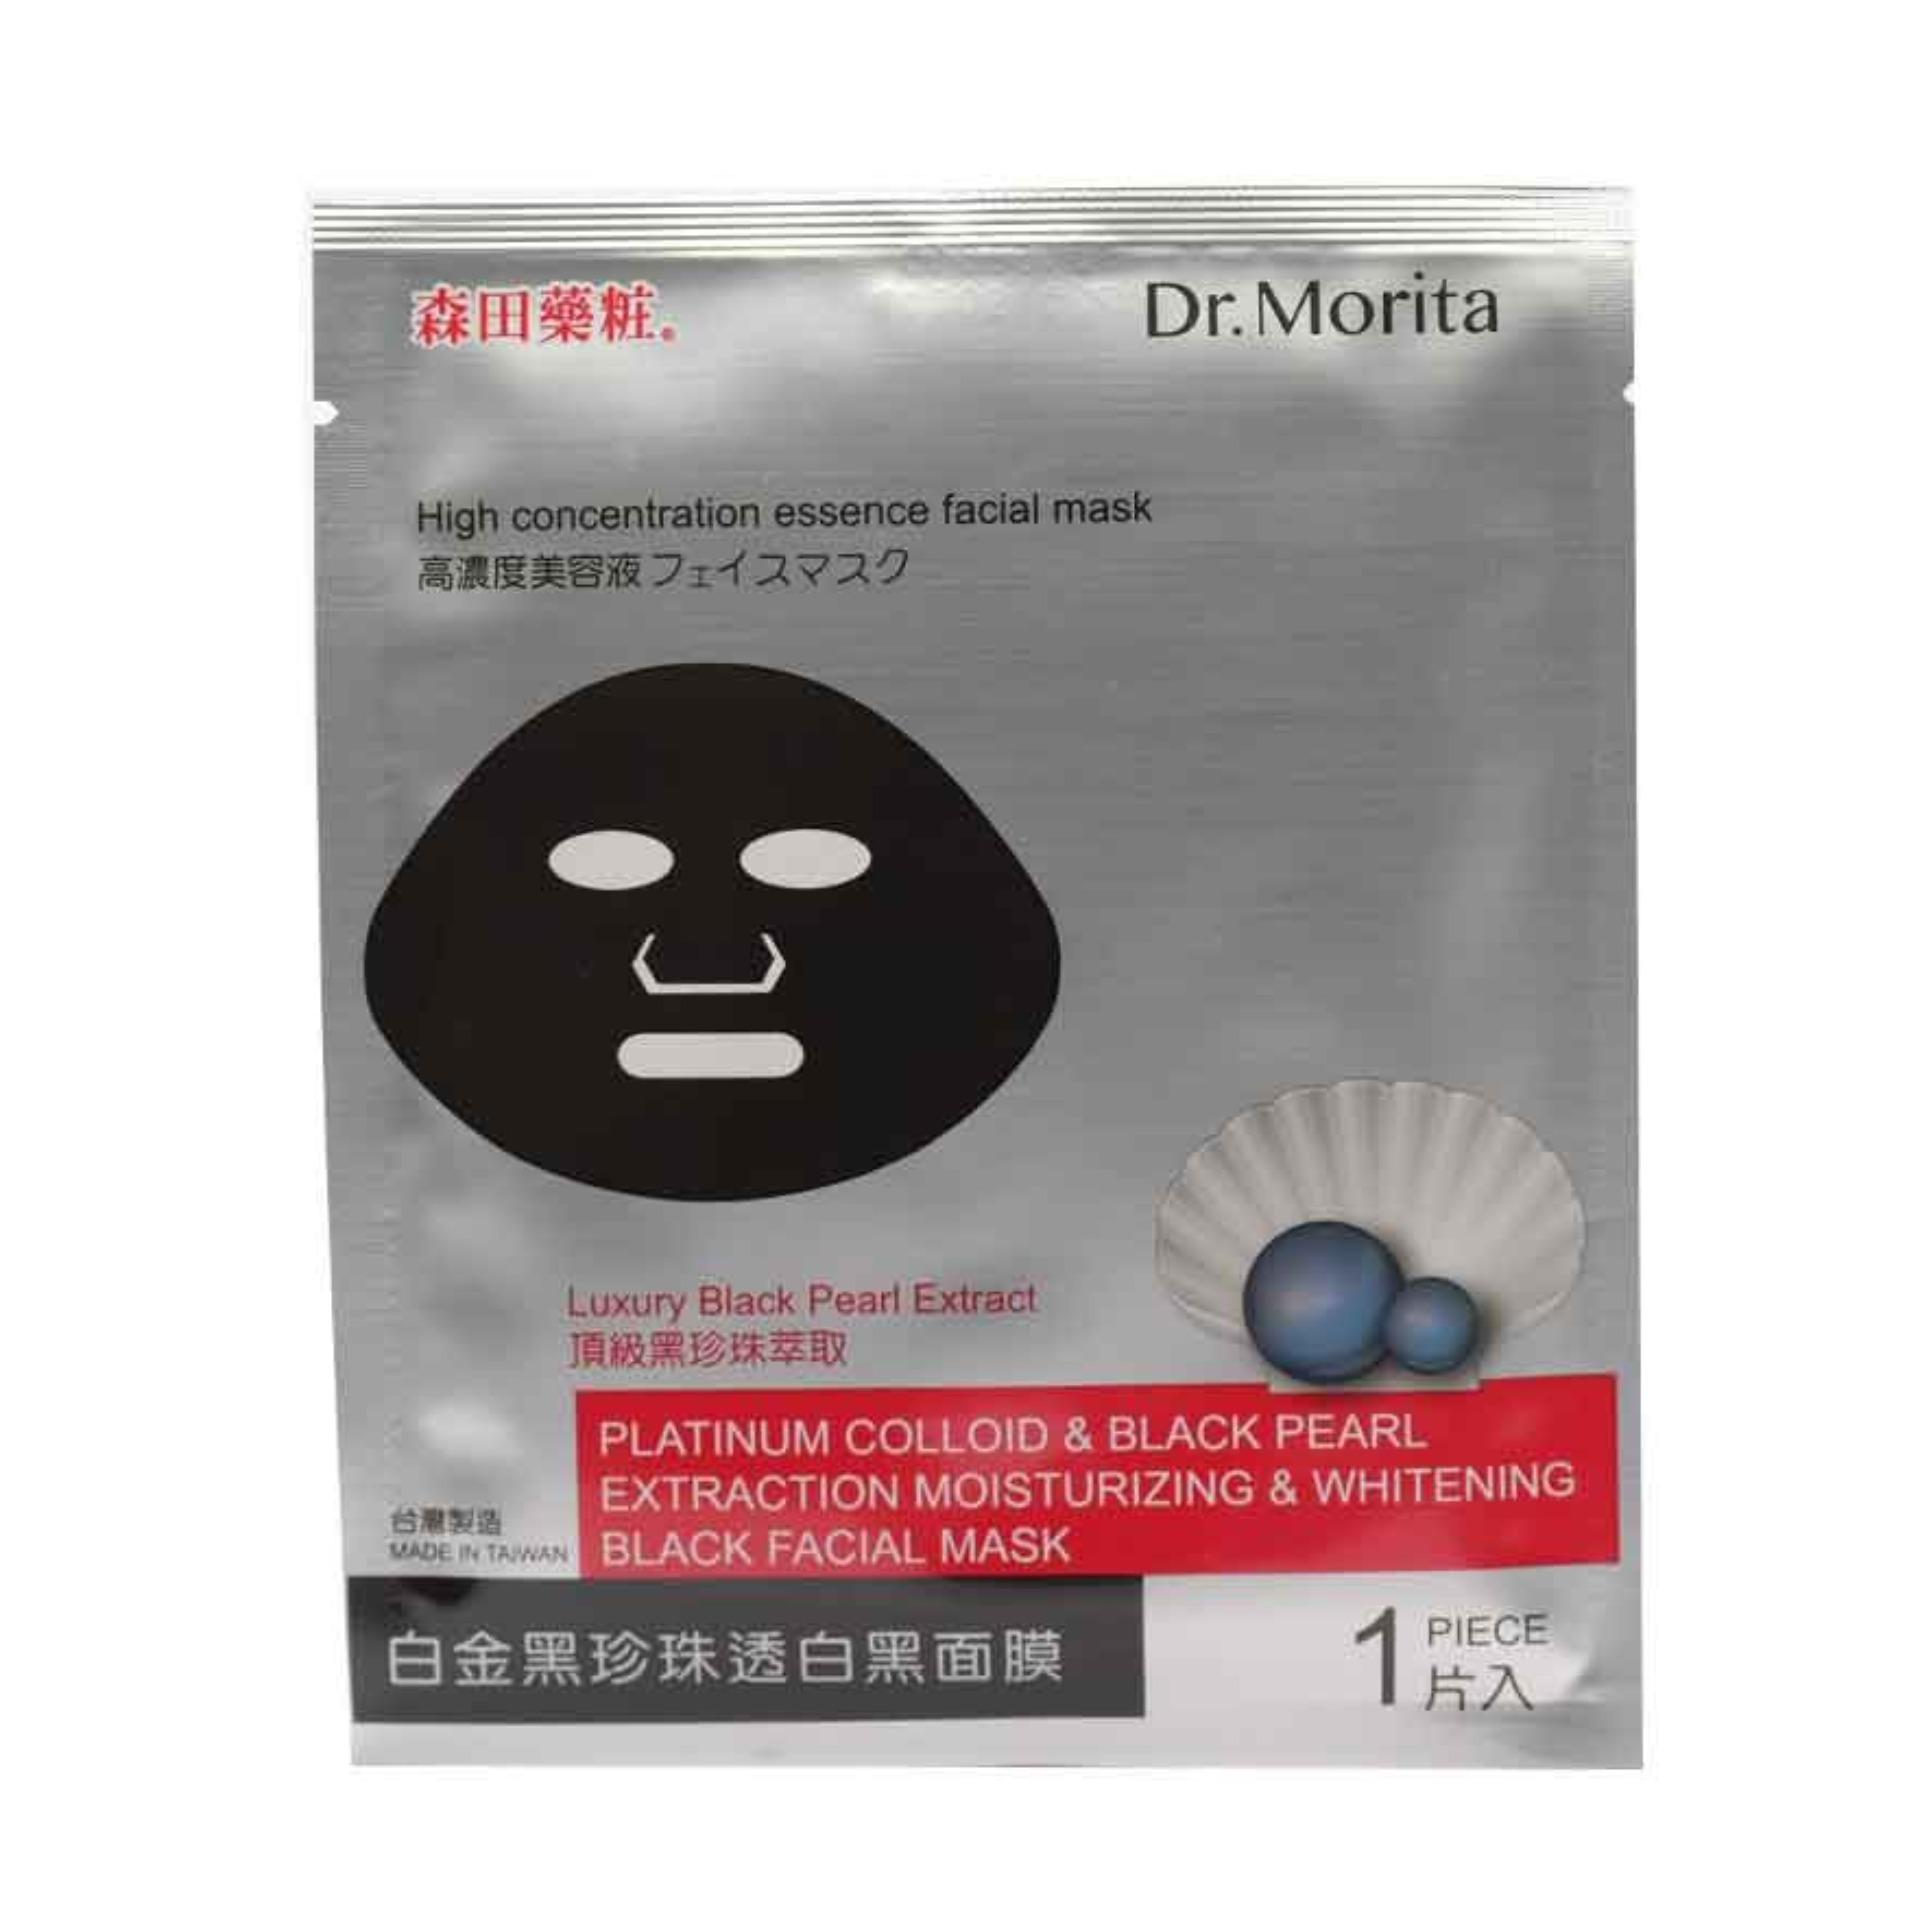 Face Mask Brands Pack On Sale Prices Set Reviews In Wardah Lightening Dr Morita Platinum Colloid Black Pearl Extraction Moisturizing Whitening Facial